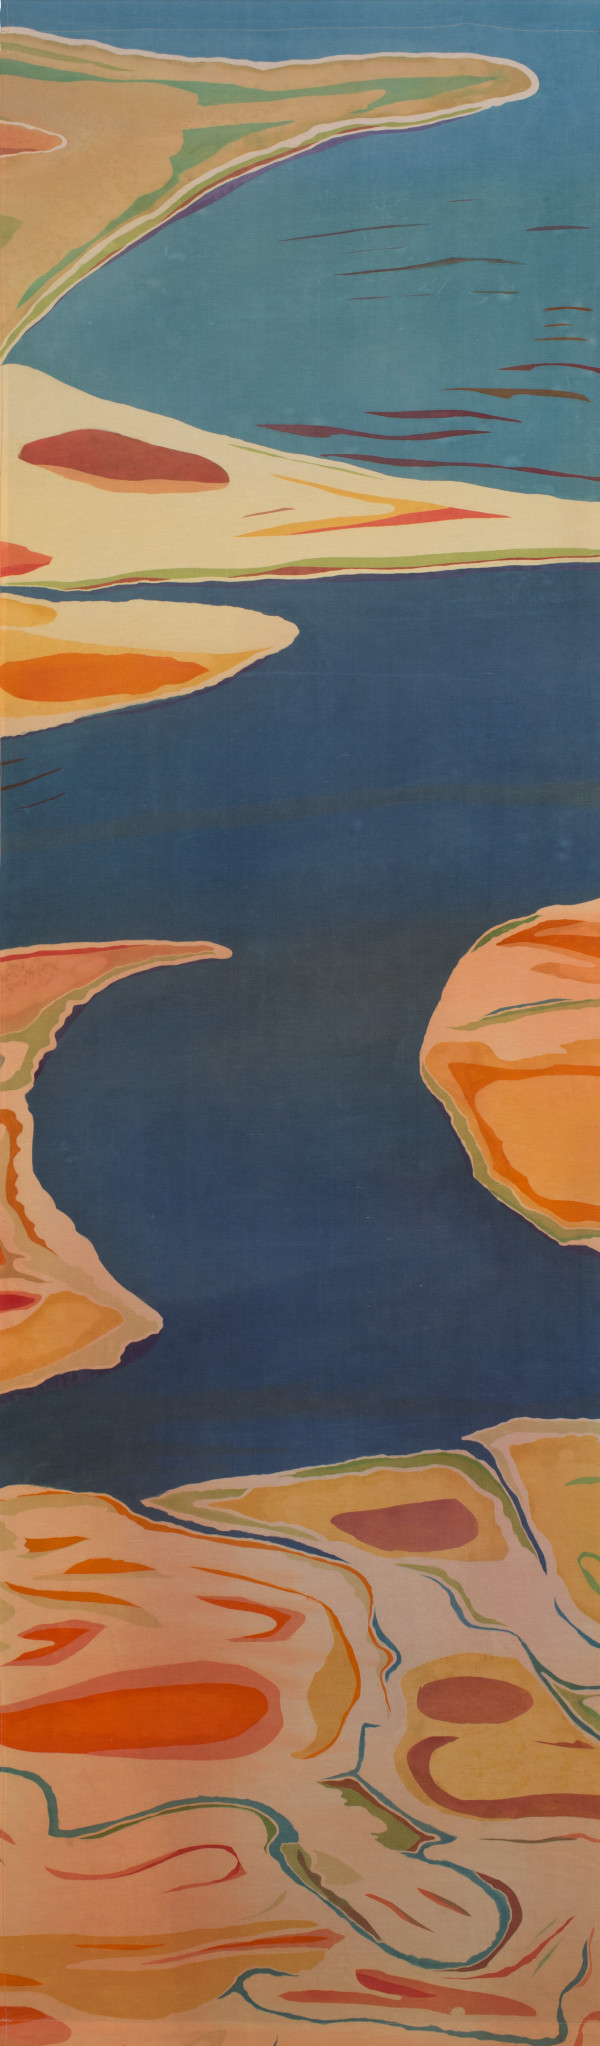 Sacred Waterway II(diptych) by Mary Edna Fraser